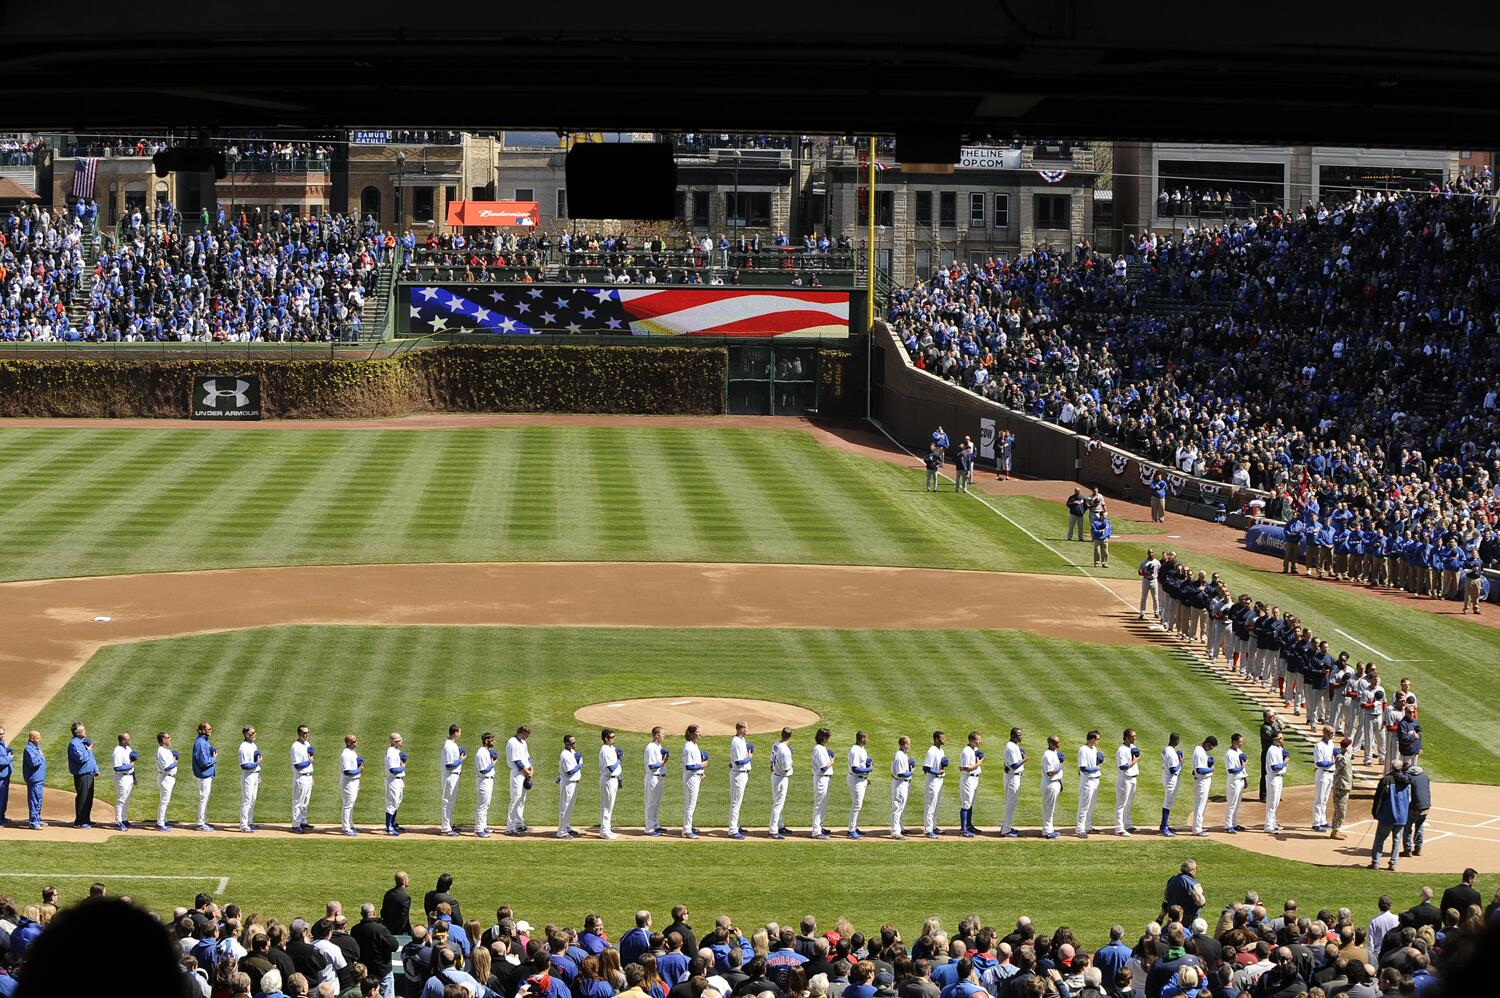 Happy #MemorialDay. We look forward to seeing you at Wrigley Field for Wednesday's #Cubs game against the White Sox. http://t.co/1dWO7m0RwZ